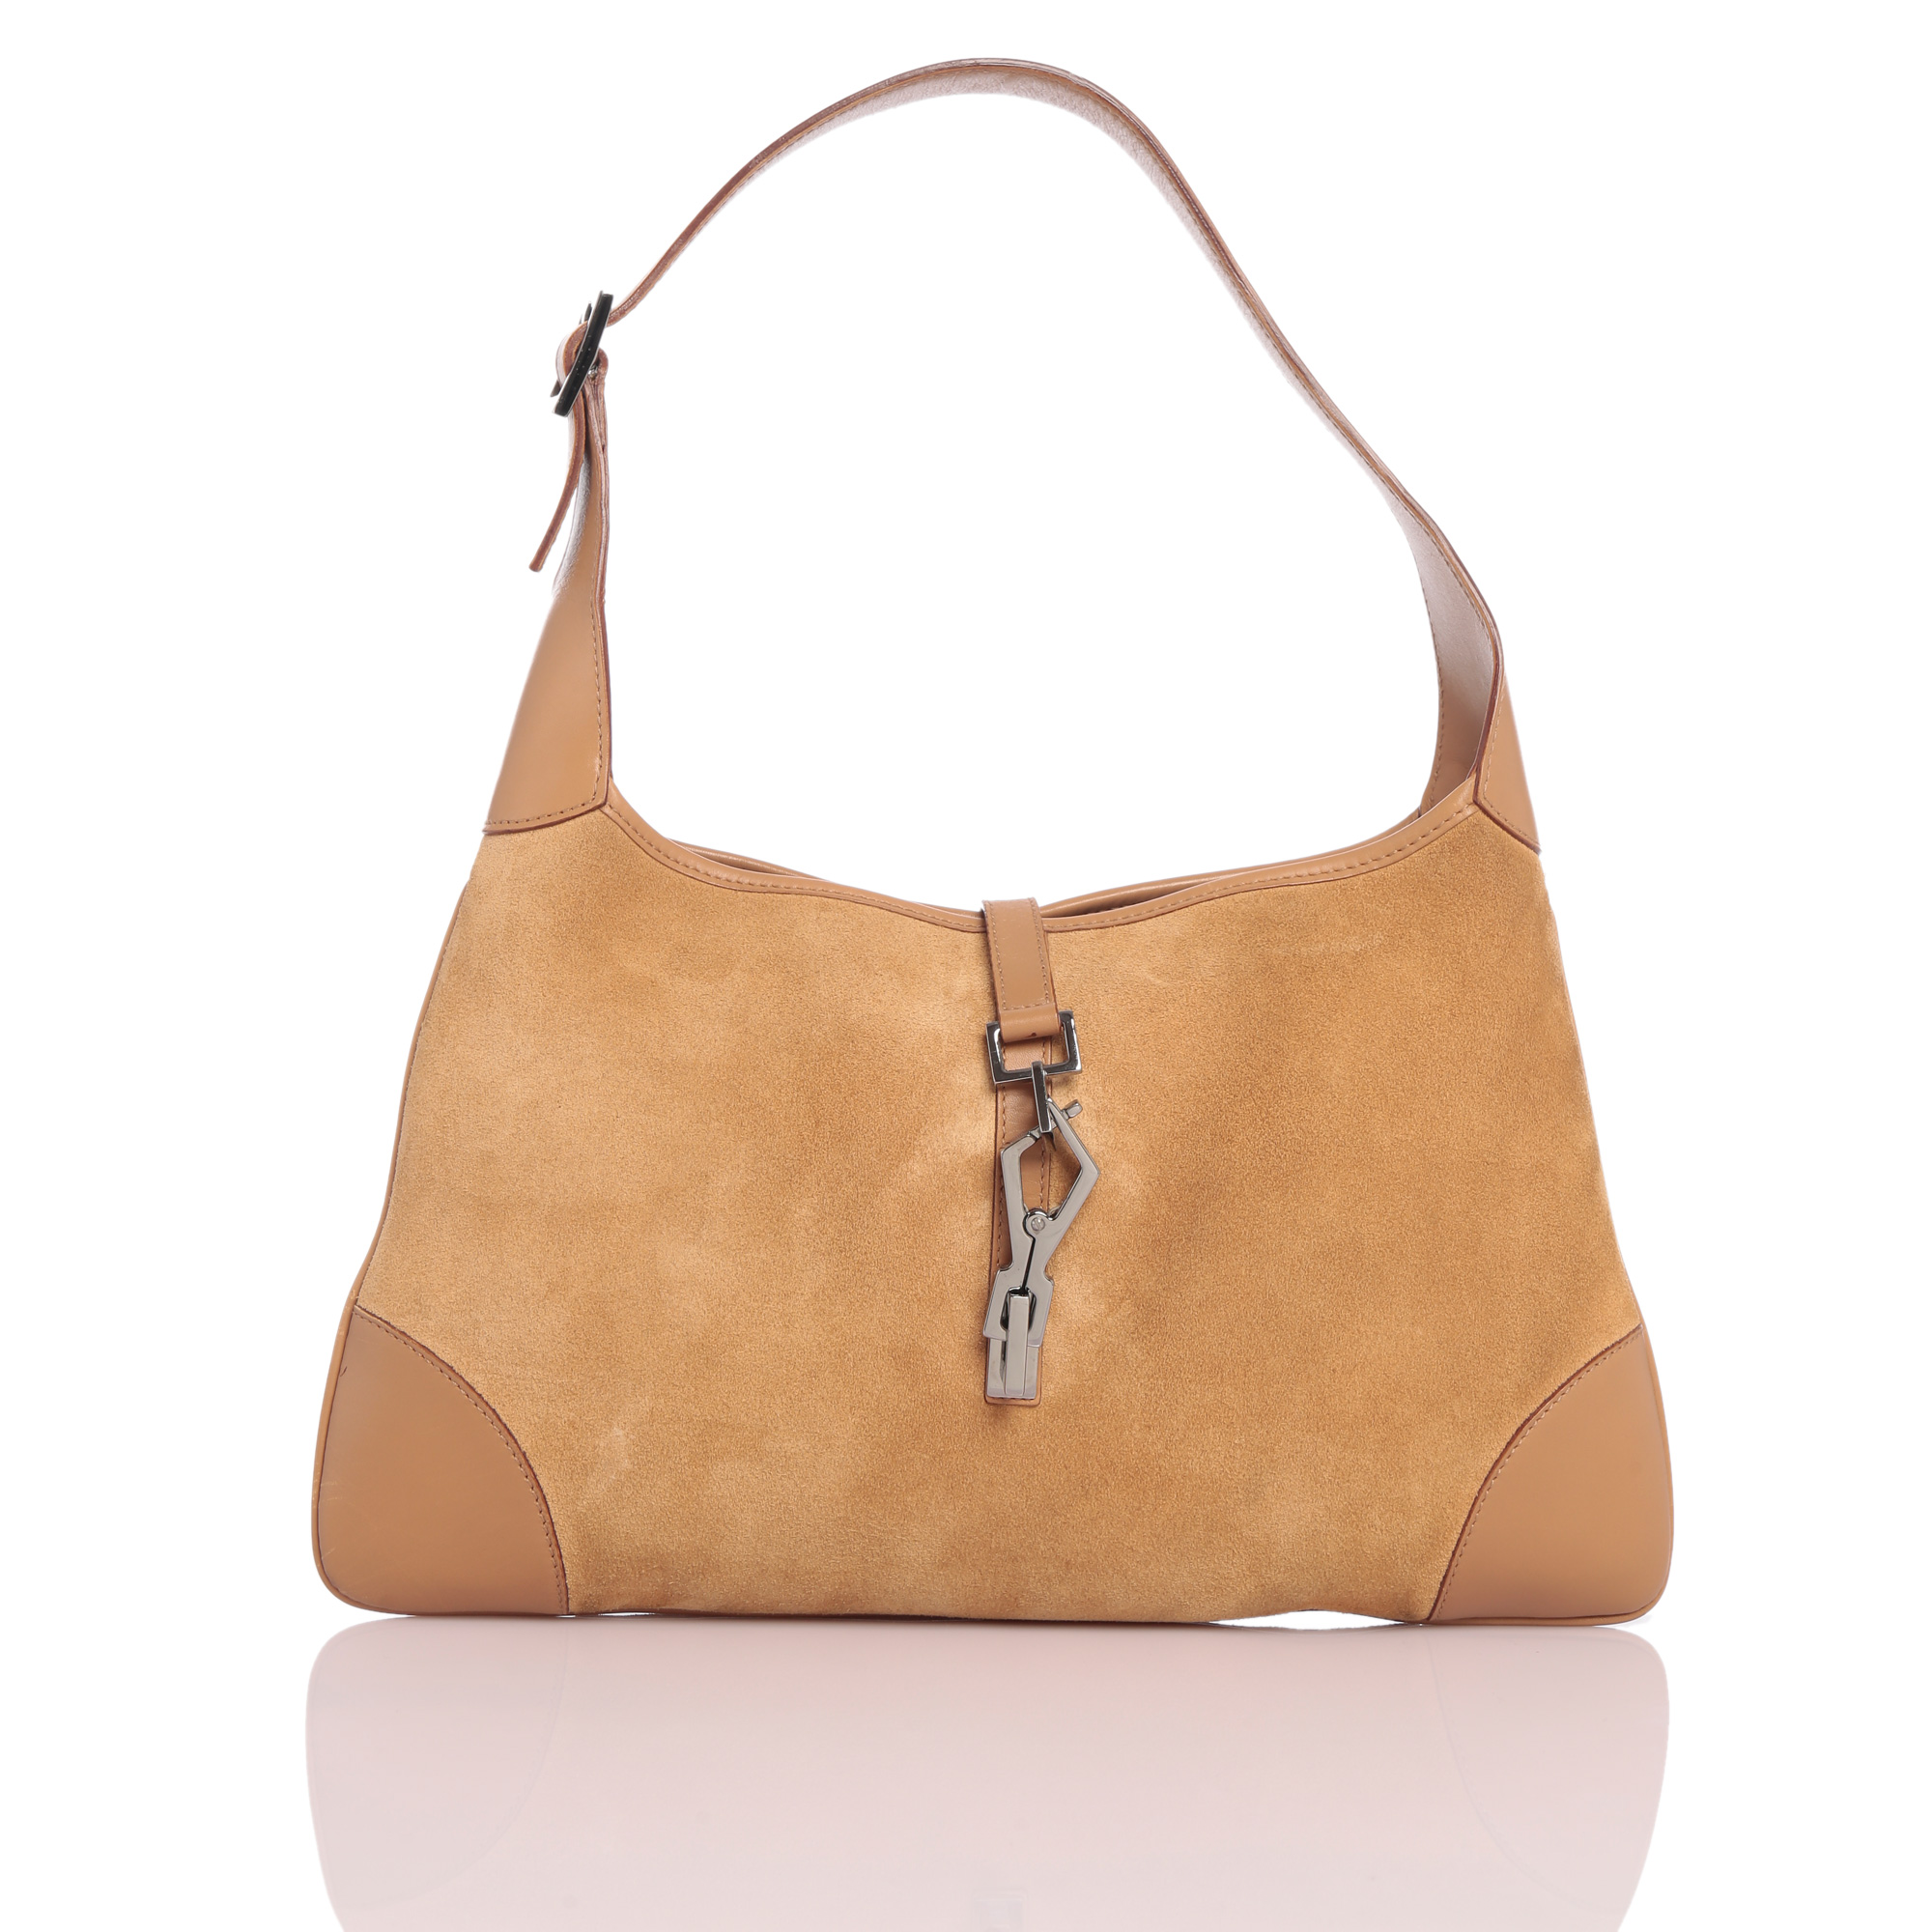 Gucci Online India My Luxury Bargain Beige Leather Suede Hobo Bag